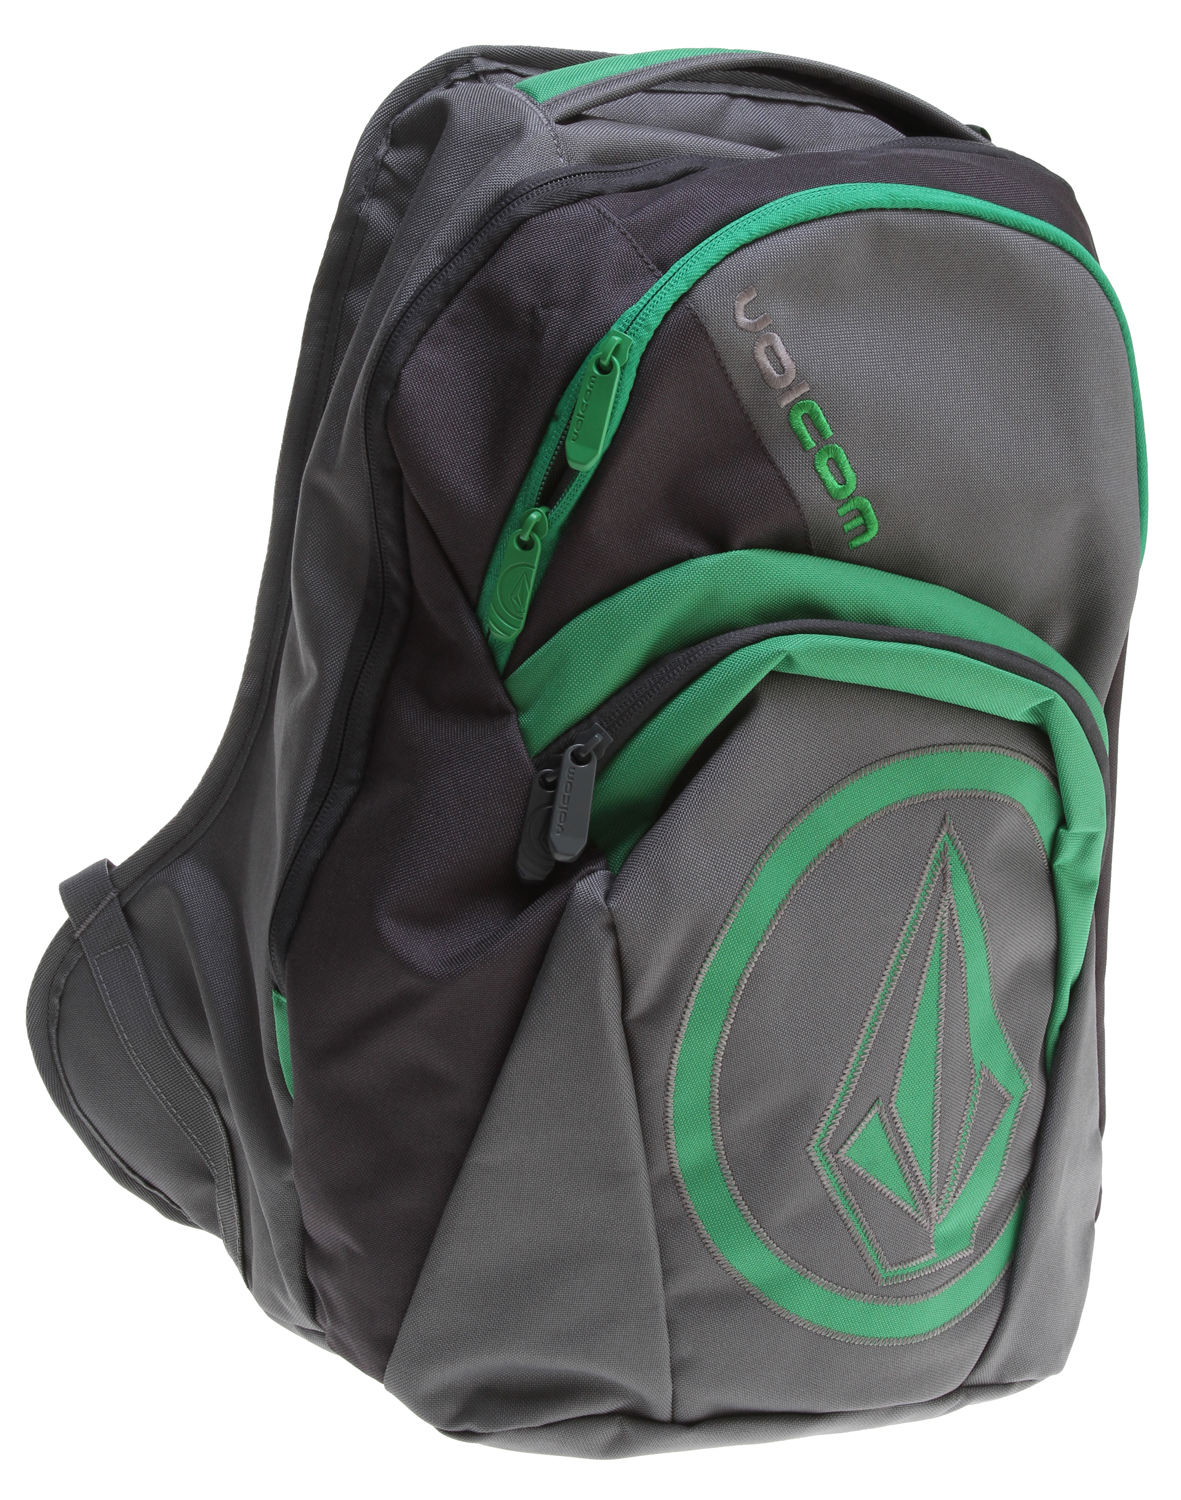 "Surf Are you tired of all the horrible looking back packs out there for sale? Don't you wish there where better looking back packs that caught your interest? Are you an adrenalin junkie? Do you love board sports? Well if you are into board sports and love adrenalin then you will probably love this Volcom Purma Backpack it's a great looking back pack at a great price. It's a great way to express your inner adrenalin junkie and carry your books at the same time. It's very light weight and durable so you will be happy for some time to come.Key Features of the Volcom Purma Backpack: Volume: 31L Dimensions: 19.75 x 13 x 7.75"" Weight: 1.4lb Four compartment backpack with 'Stone' applique and 'Volcom' embroidery As part of Volcom's V.Co-logical effort, a portion of the proceeds from the sale of this style will be donated to charities affiliated with 1% for the Planet - $35.95"